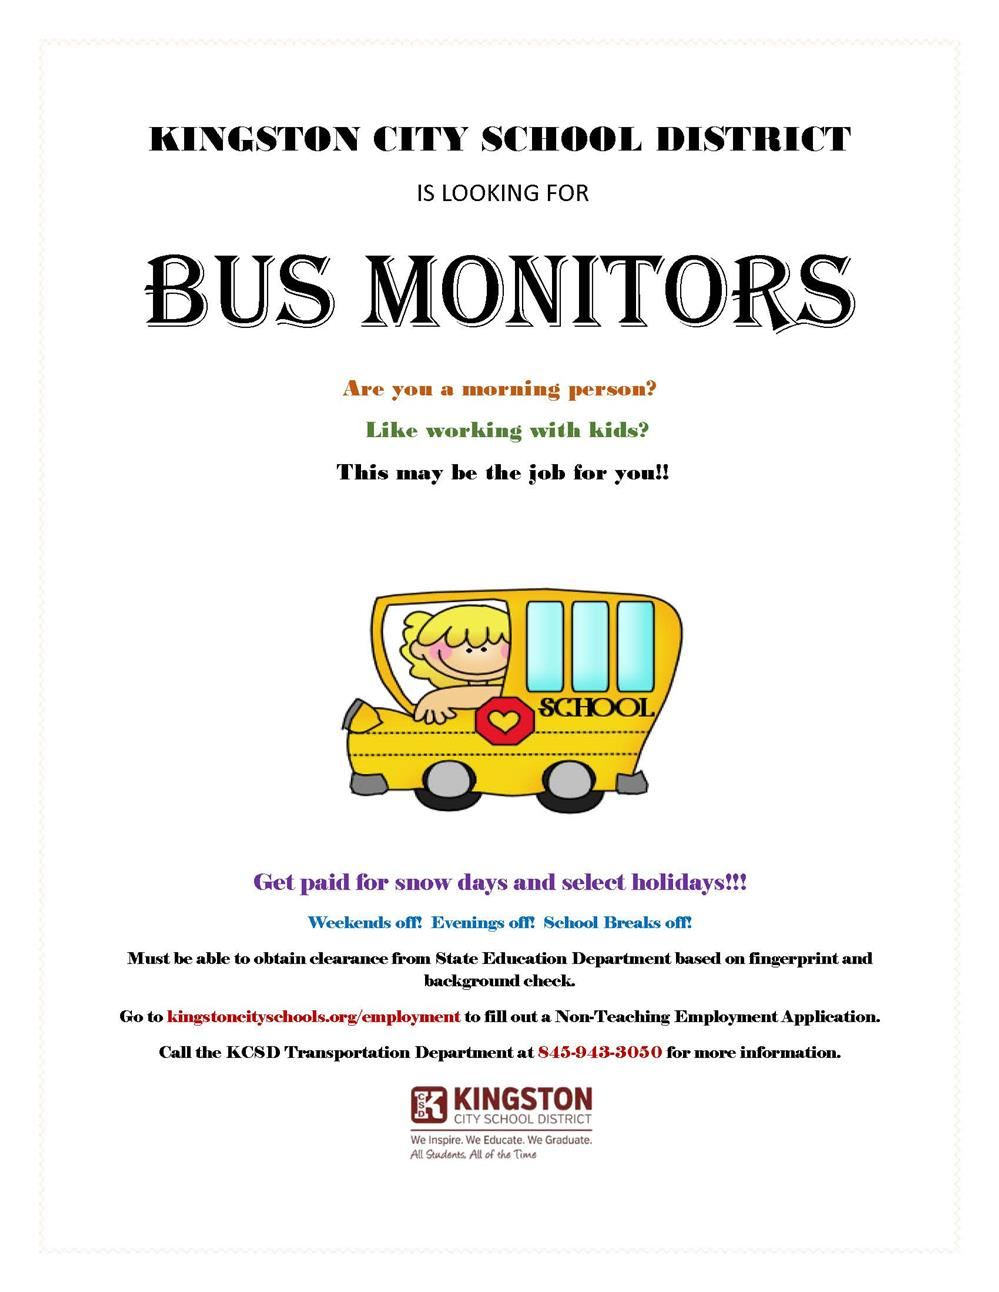 KCSD is looking for Bus Monitors